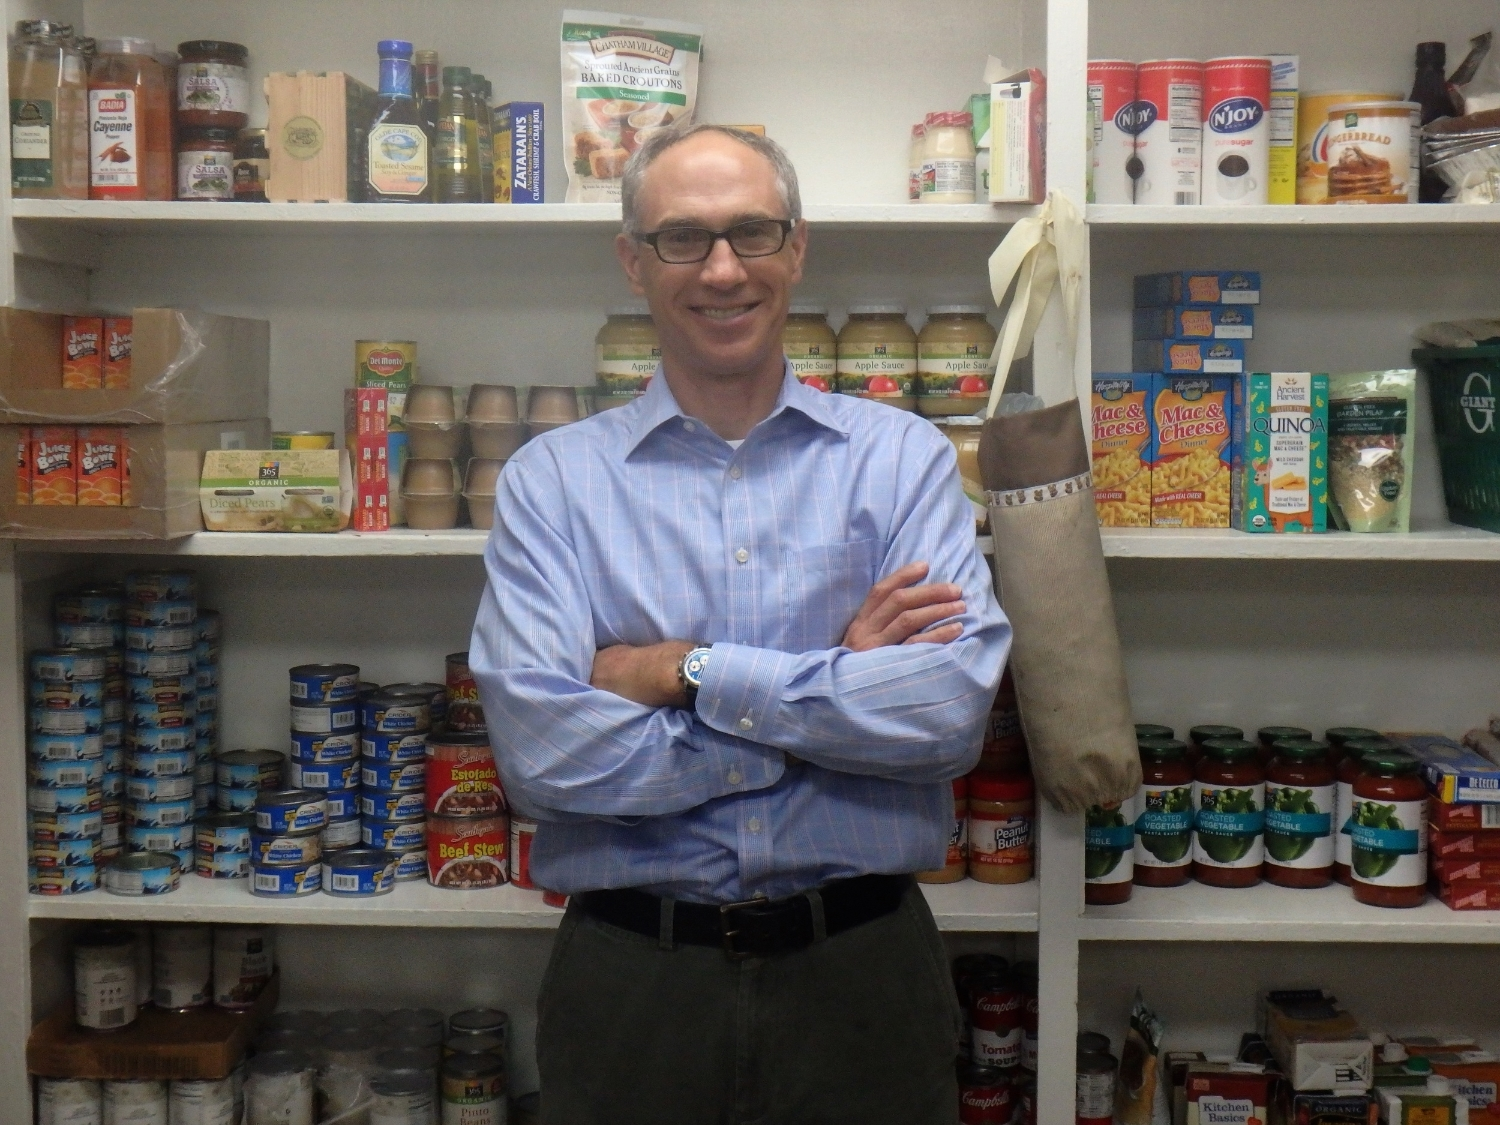 Paul Silvestri, Board President of  Samaritan Community,       stands in our food pantry - made possible by the generous support                                        of friends like you.